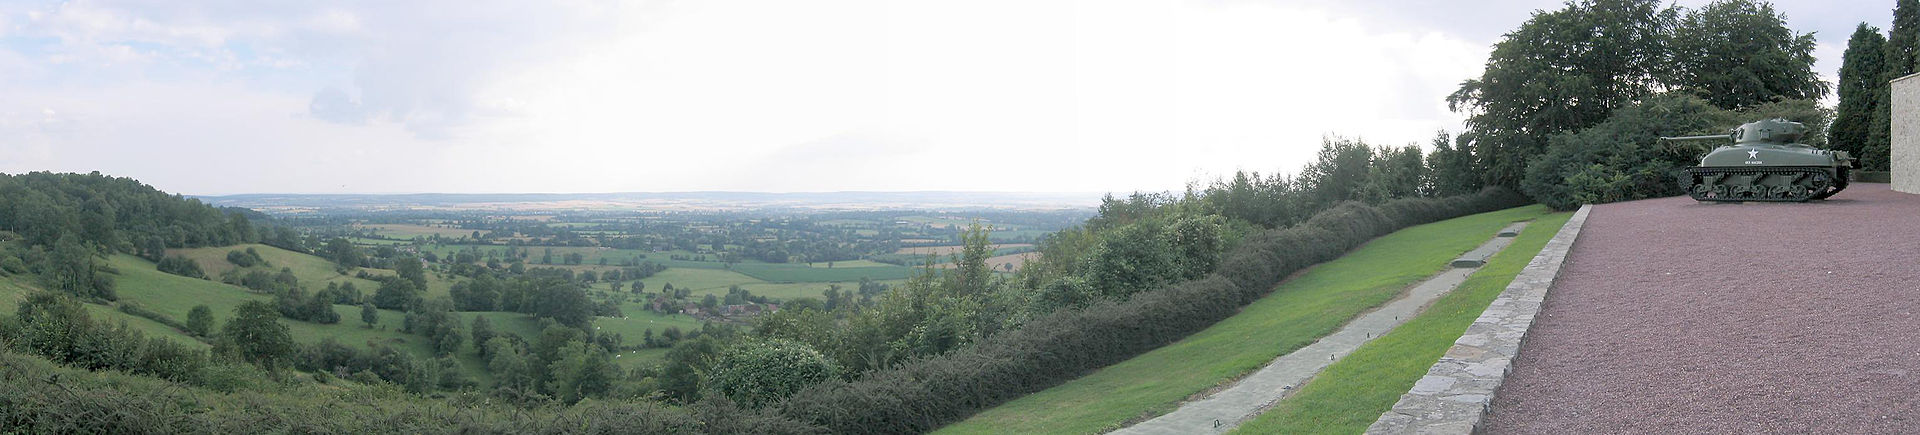 In the foreground tree-covered hills rising to the left and right frame a view over a valley. A tank and the edge of a building are on the rightmost hill. A flat plain of fields, trees and hedgerows fills the background, with a small hamlet visible in the middle-distance.